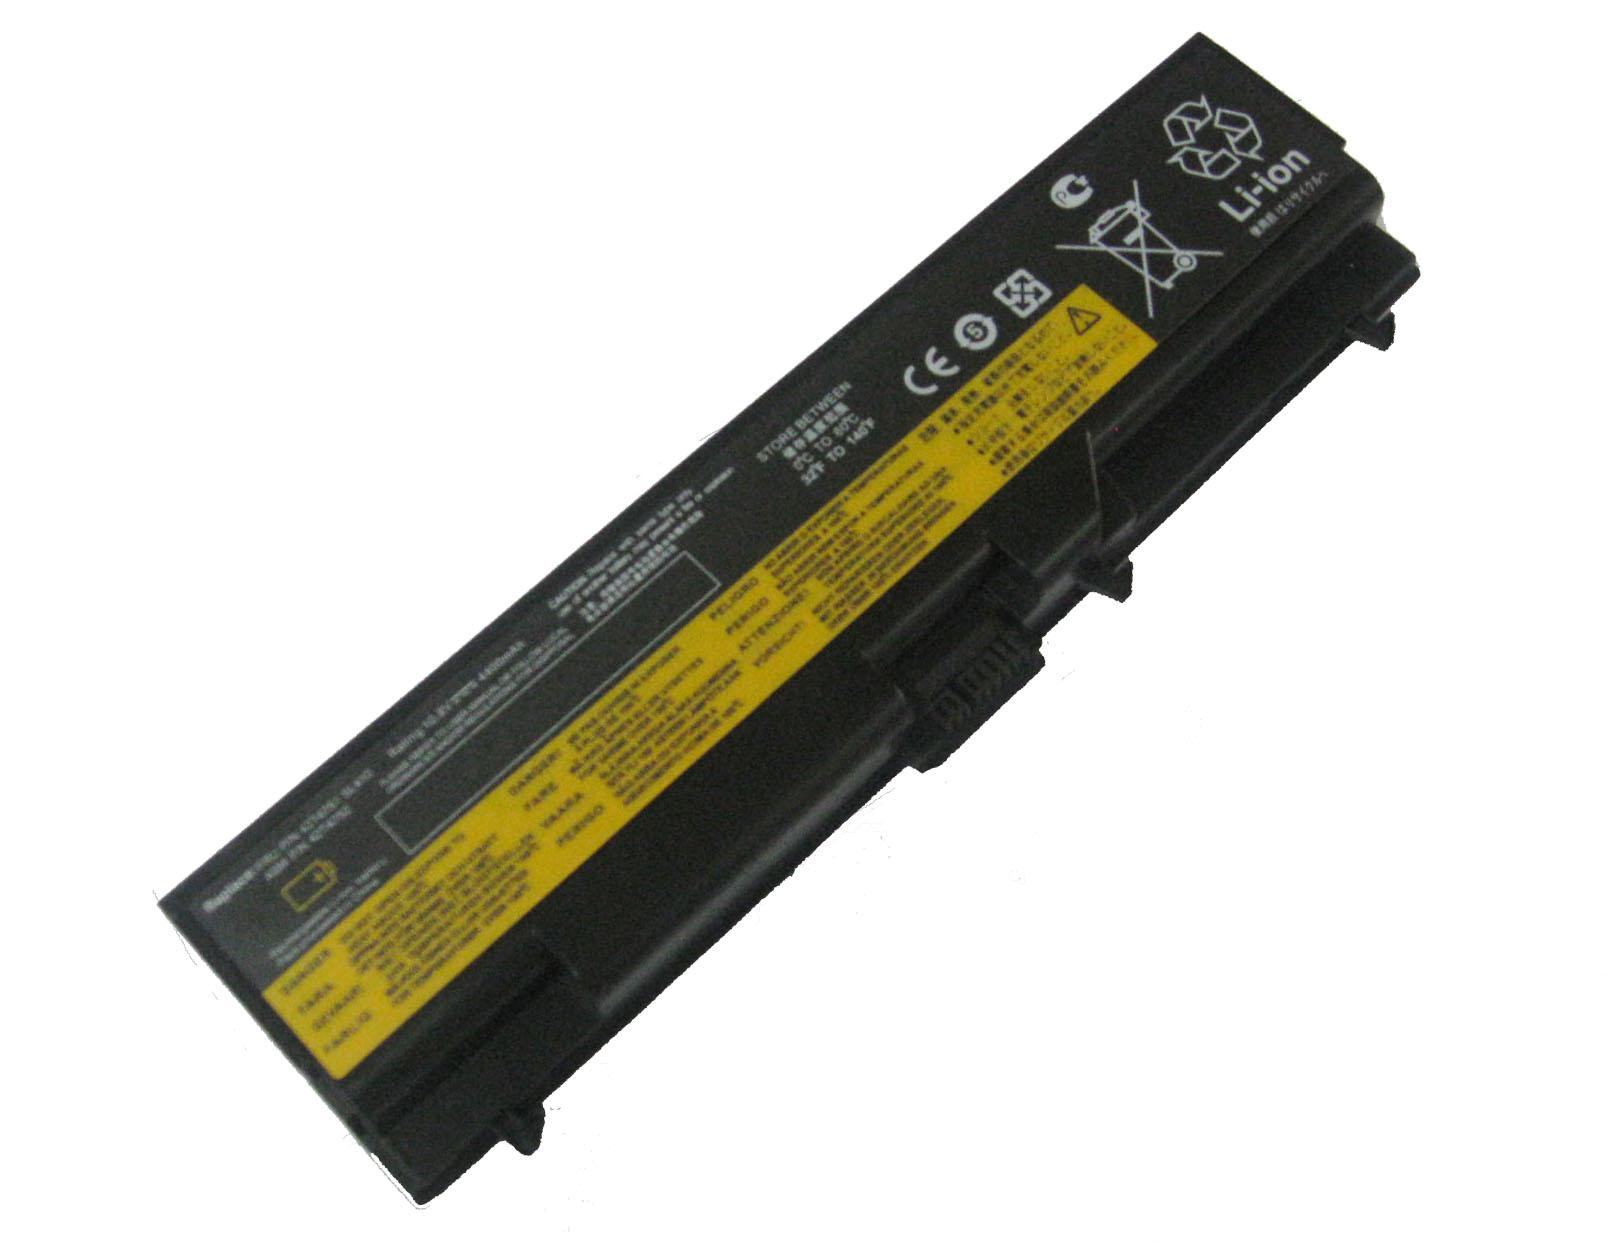 Replacement Laptop Battery for LENOVO SL410	Comaptible With ThinkPad E40,  ThinkPad E50, ThinkPad Edge 14, ThinkPad Edge 14 05787WJ, ThinkPad Edge 14 05787XJ